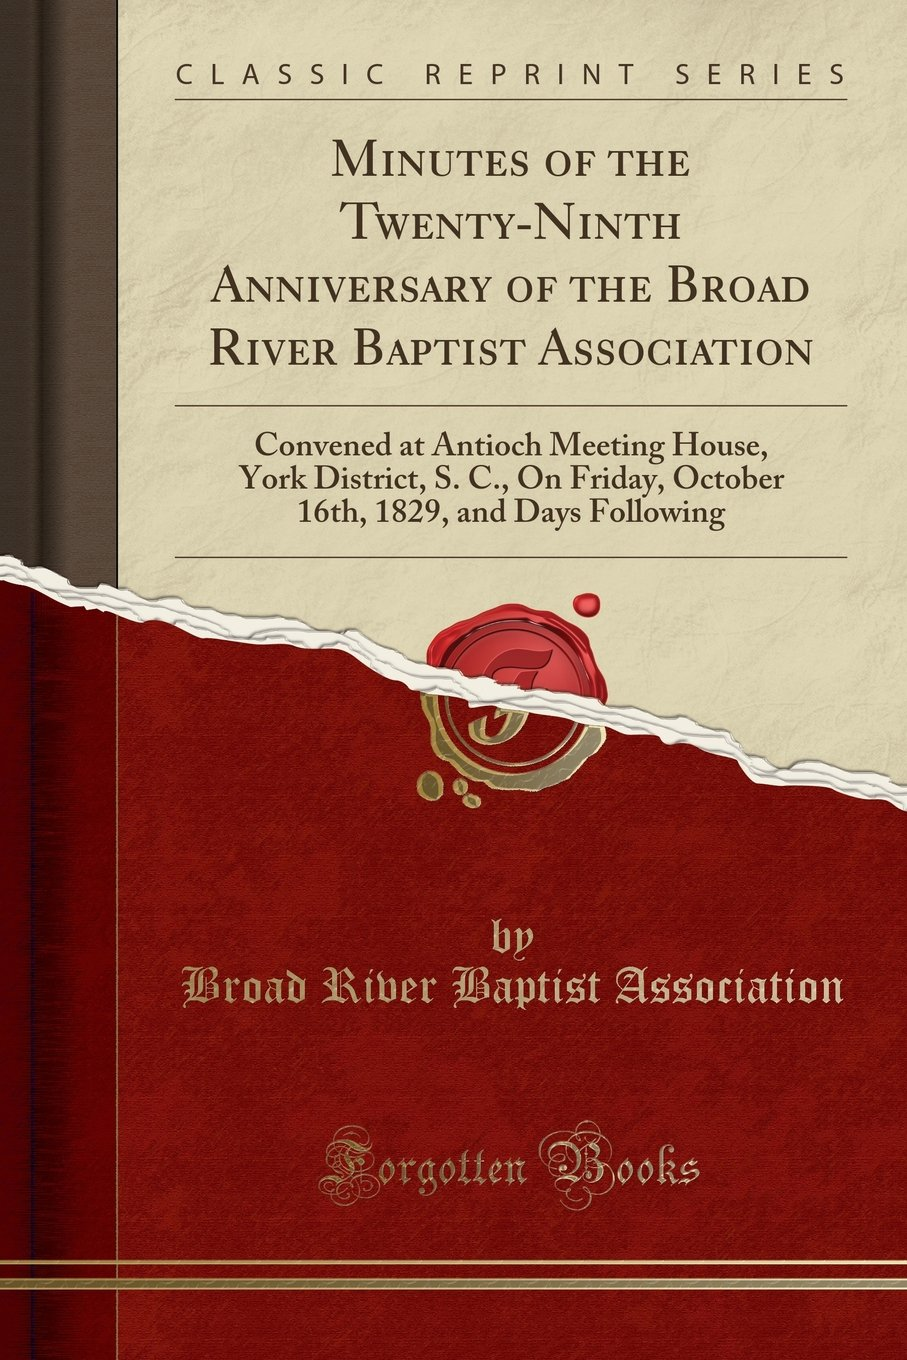 Minutes of the Twenty-Ninth Anniversary of the Broad River Baptist Association: Convened at Antioch Meeting House, York District, S. C., On Friday, ... 1829, and Days Following (Classic Reprint) pdf